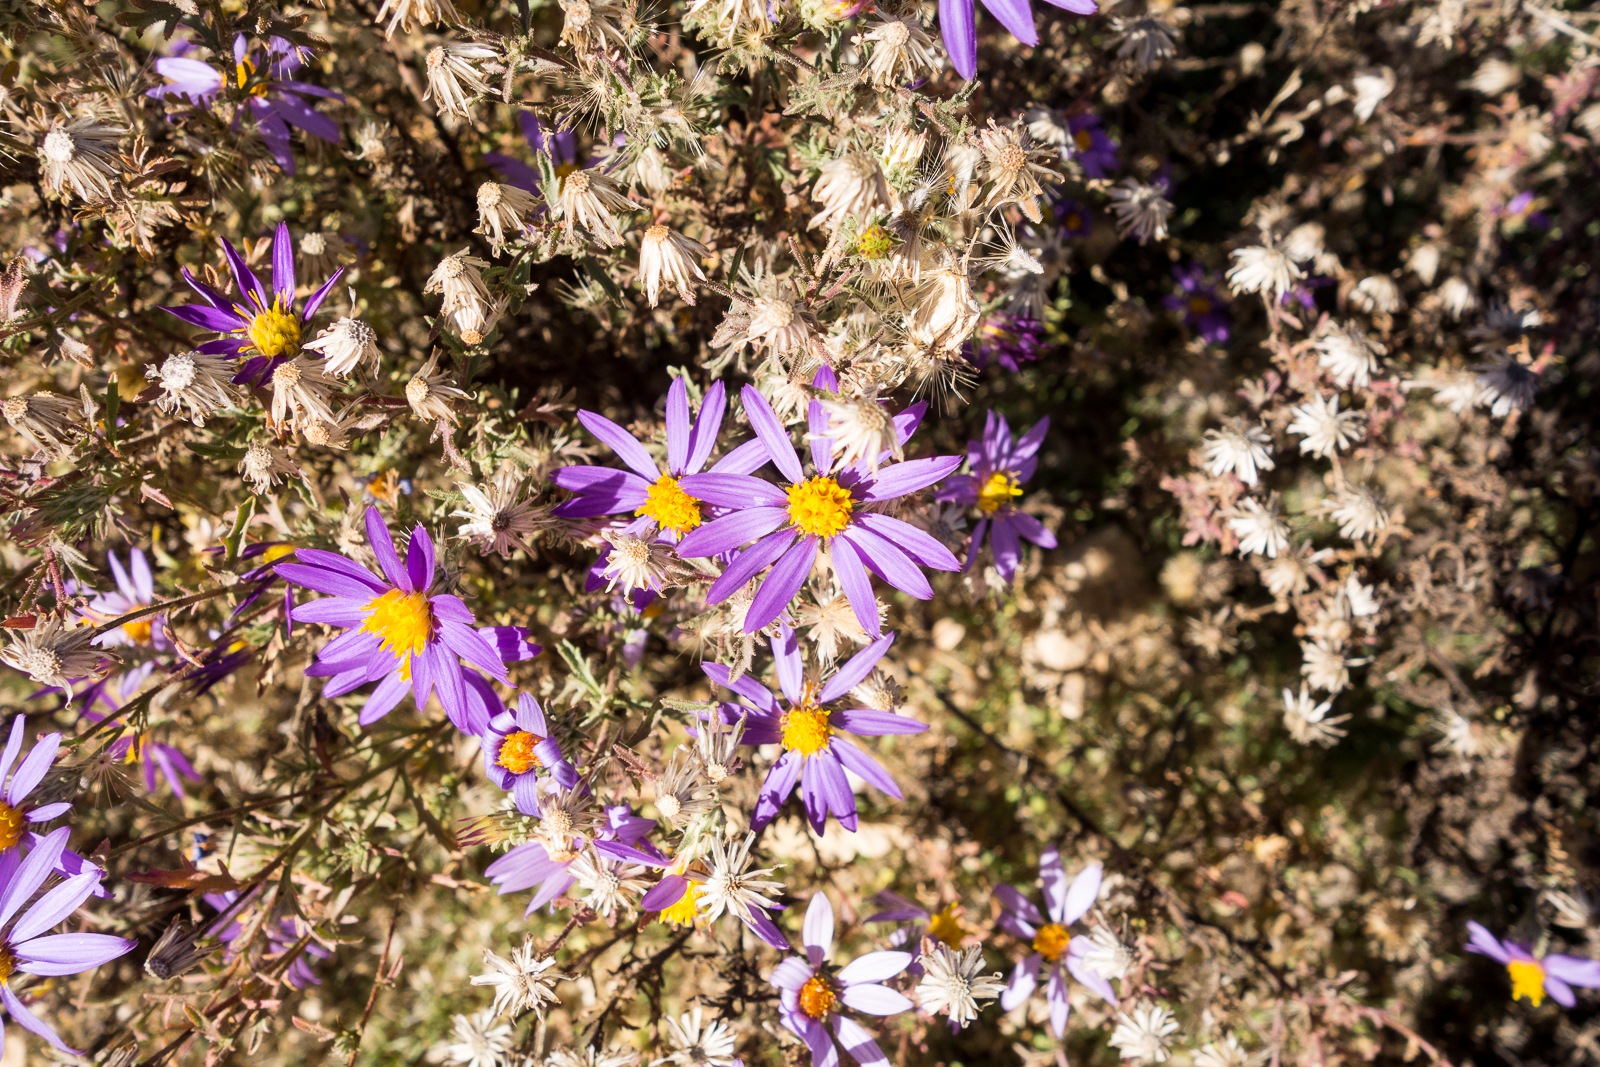 Flowers covering the ground alongside the Agua Calinte Canyon Trail near Gnat Tank. November 2015.